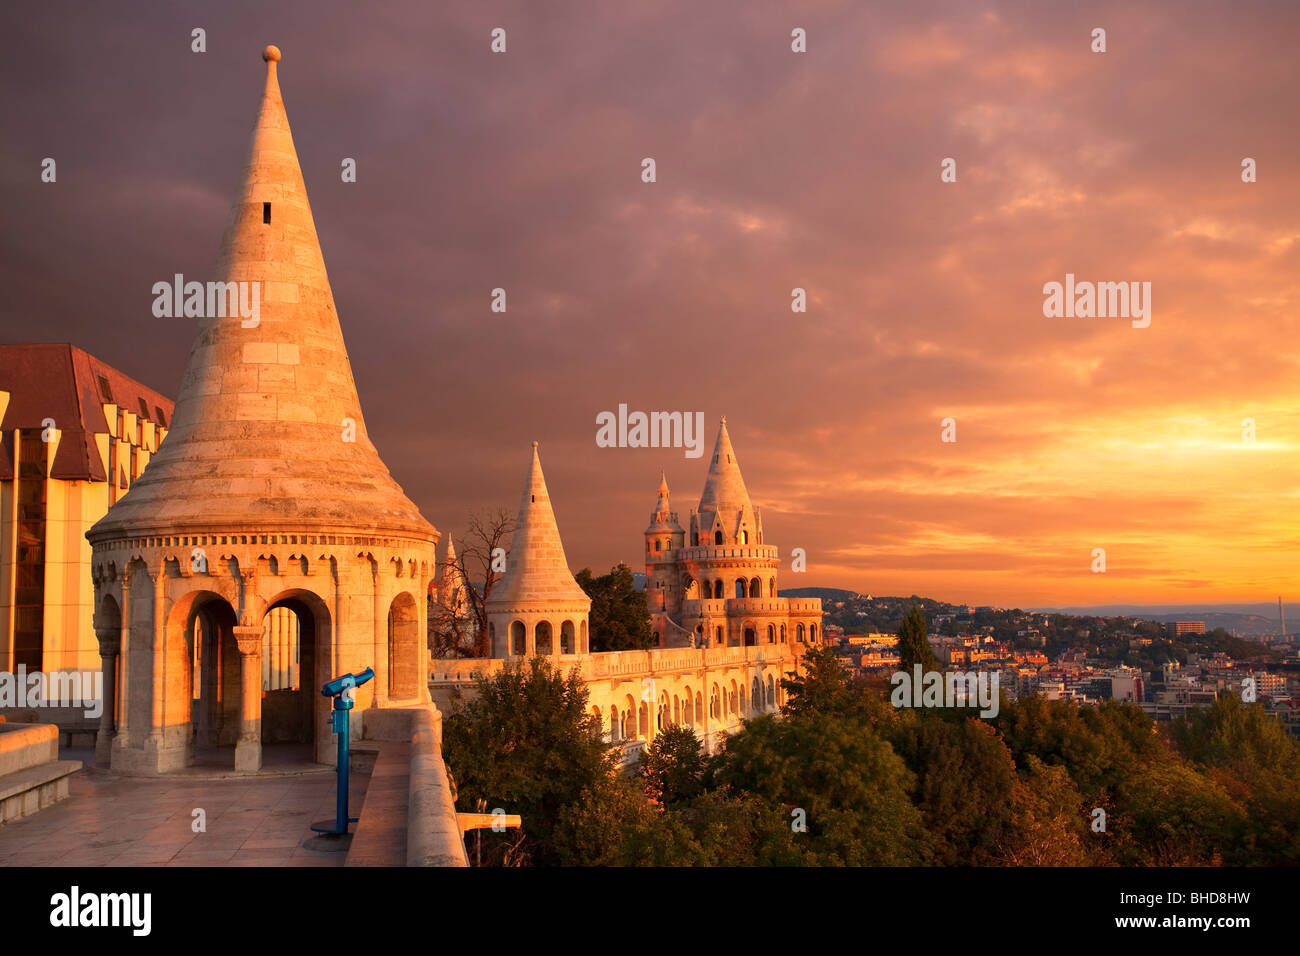 Sunset over Fisherman's bastion in Buda Castle in Budapest Stock Photo